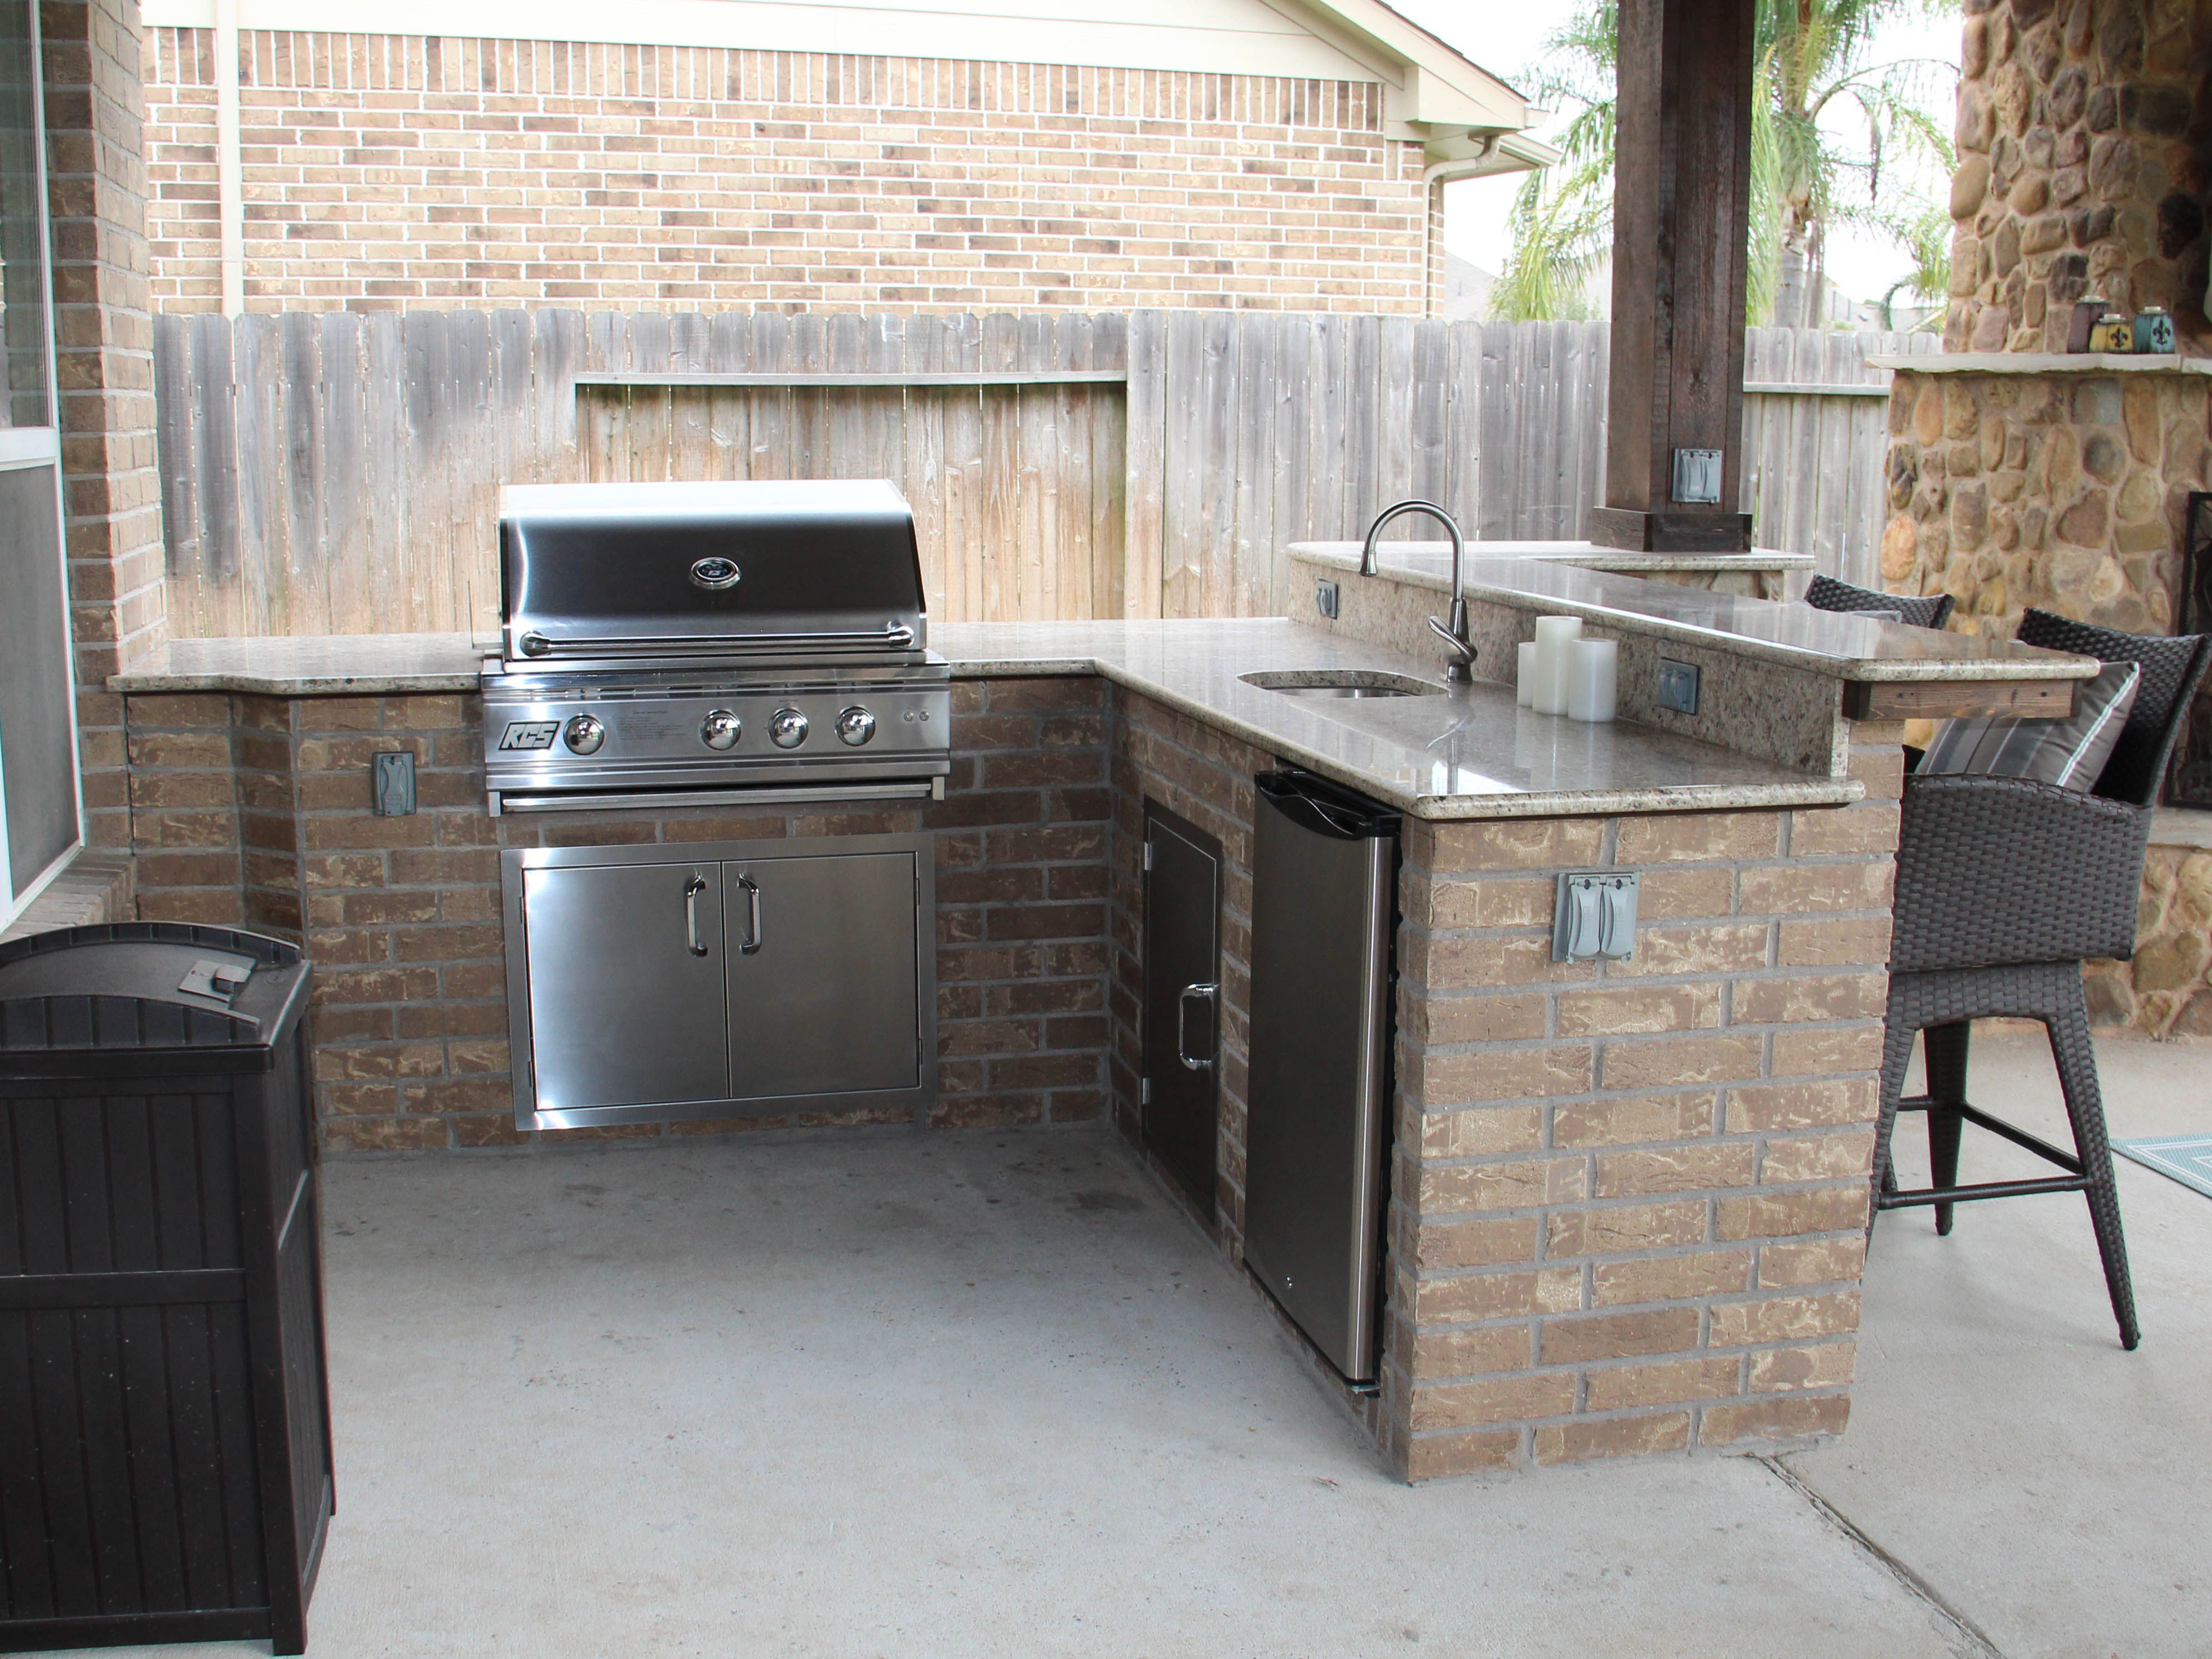 Www Customoutdoors Com L Shaped Outdoor Kitchen With Grill Refrigerator Sink Raised Serving Bar Outdoor Kitchen Kitchen Serving Bar